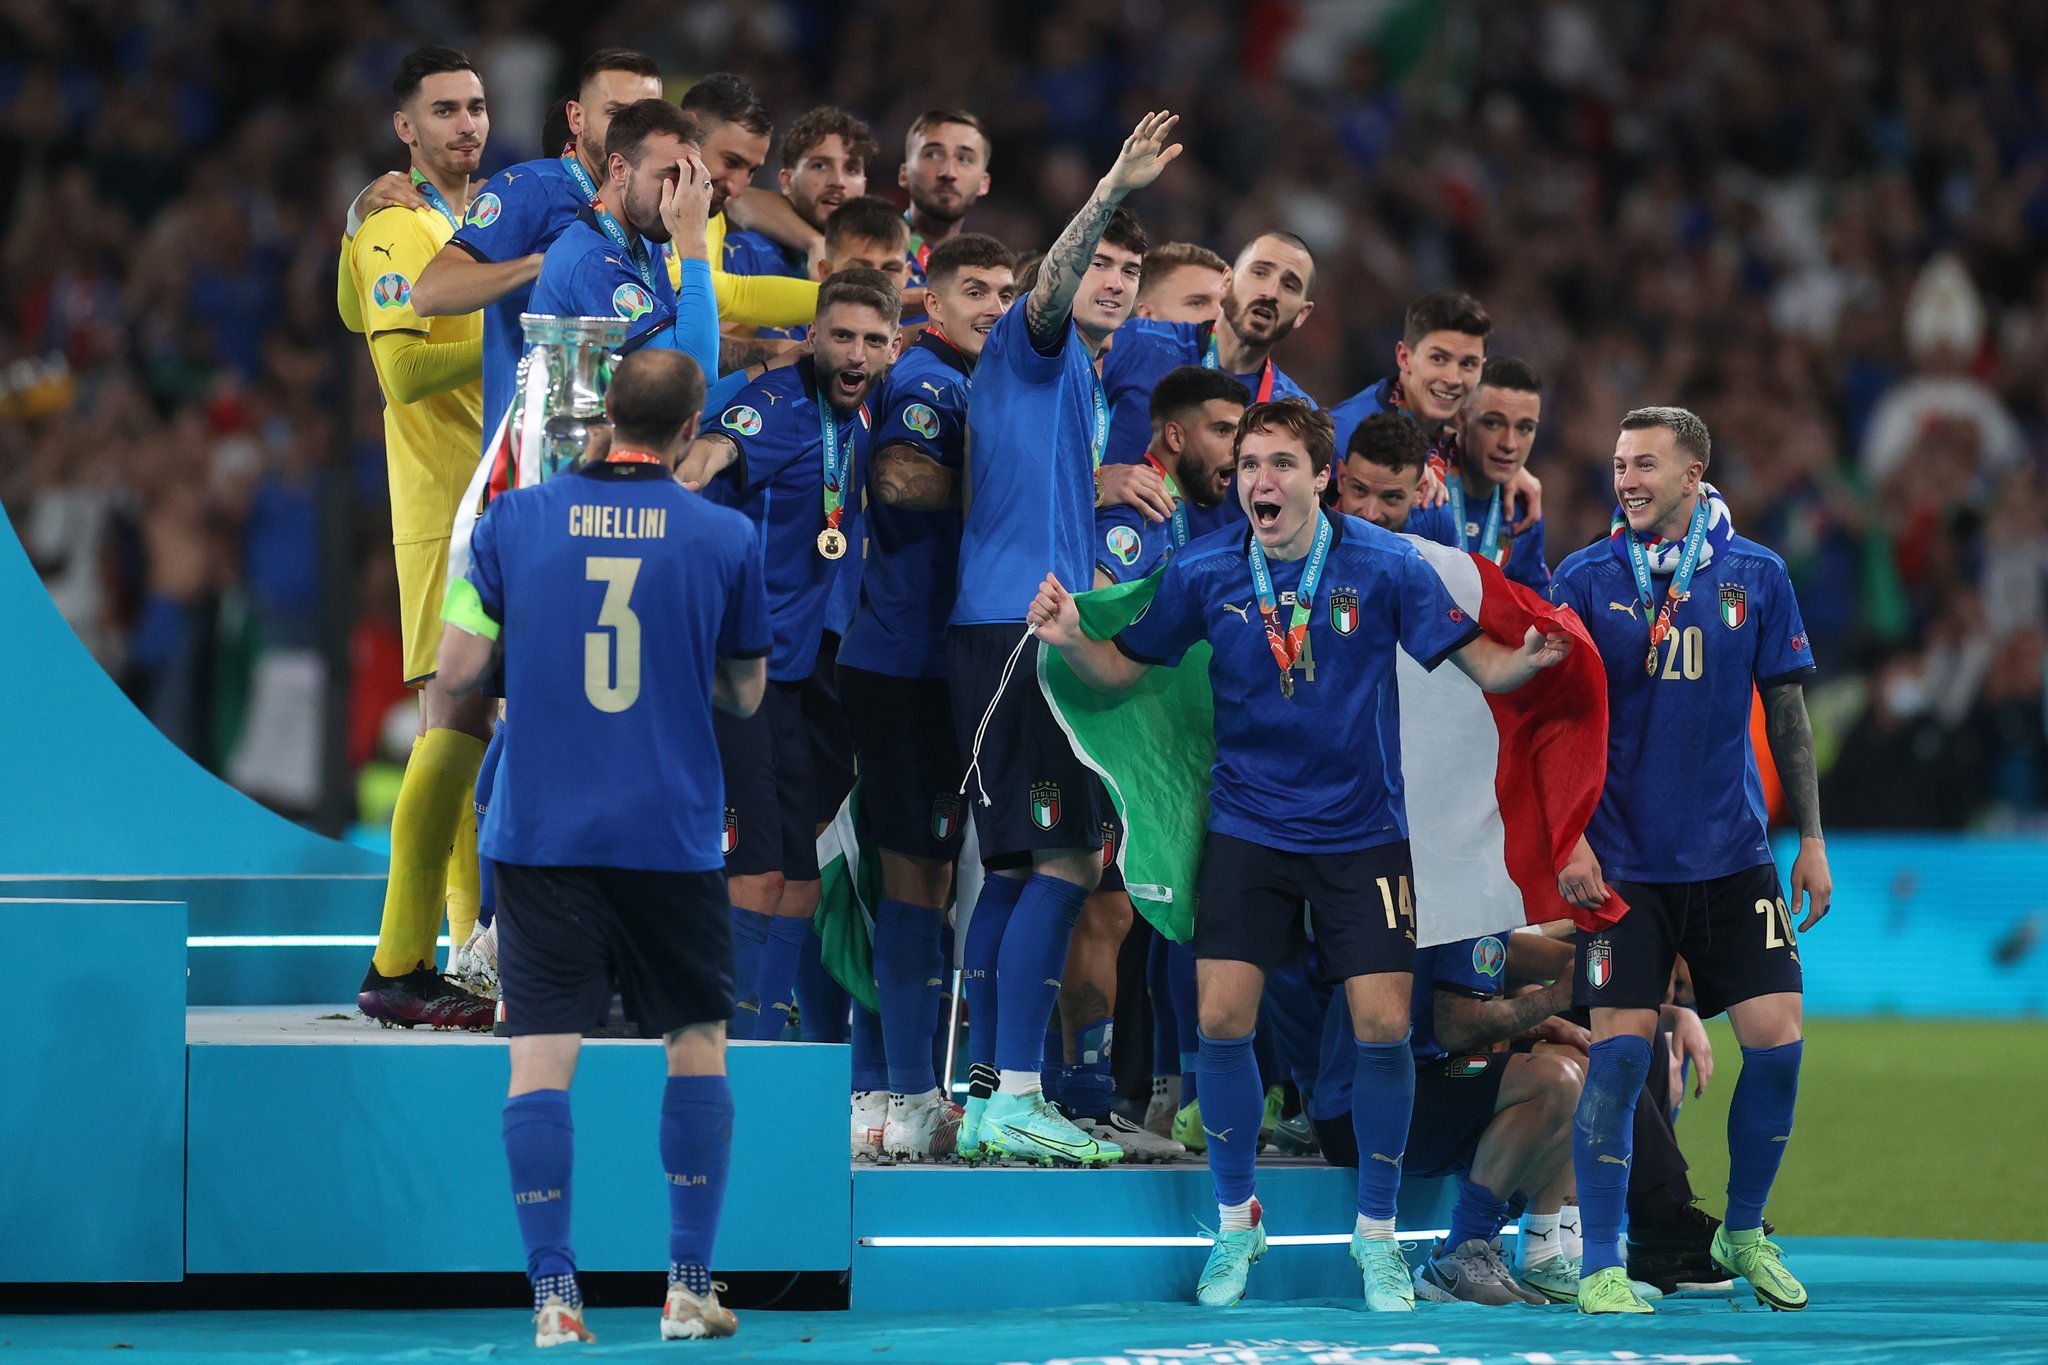 How many times has Italy won the Euros after their win in 2021?